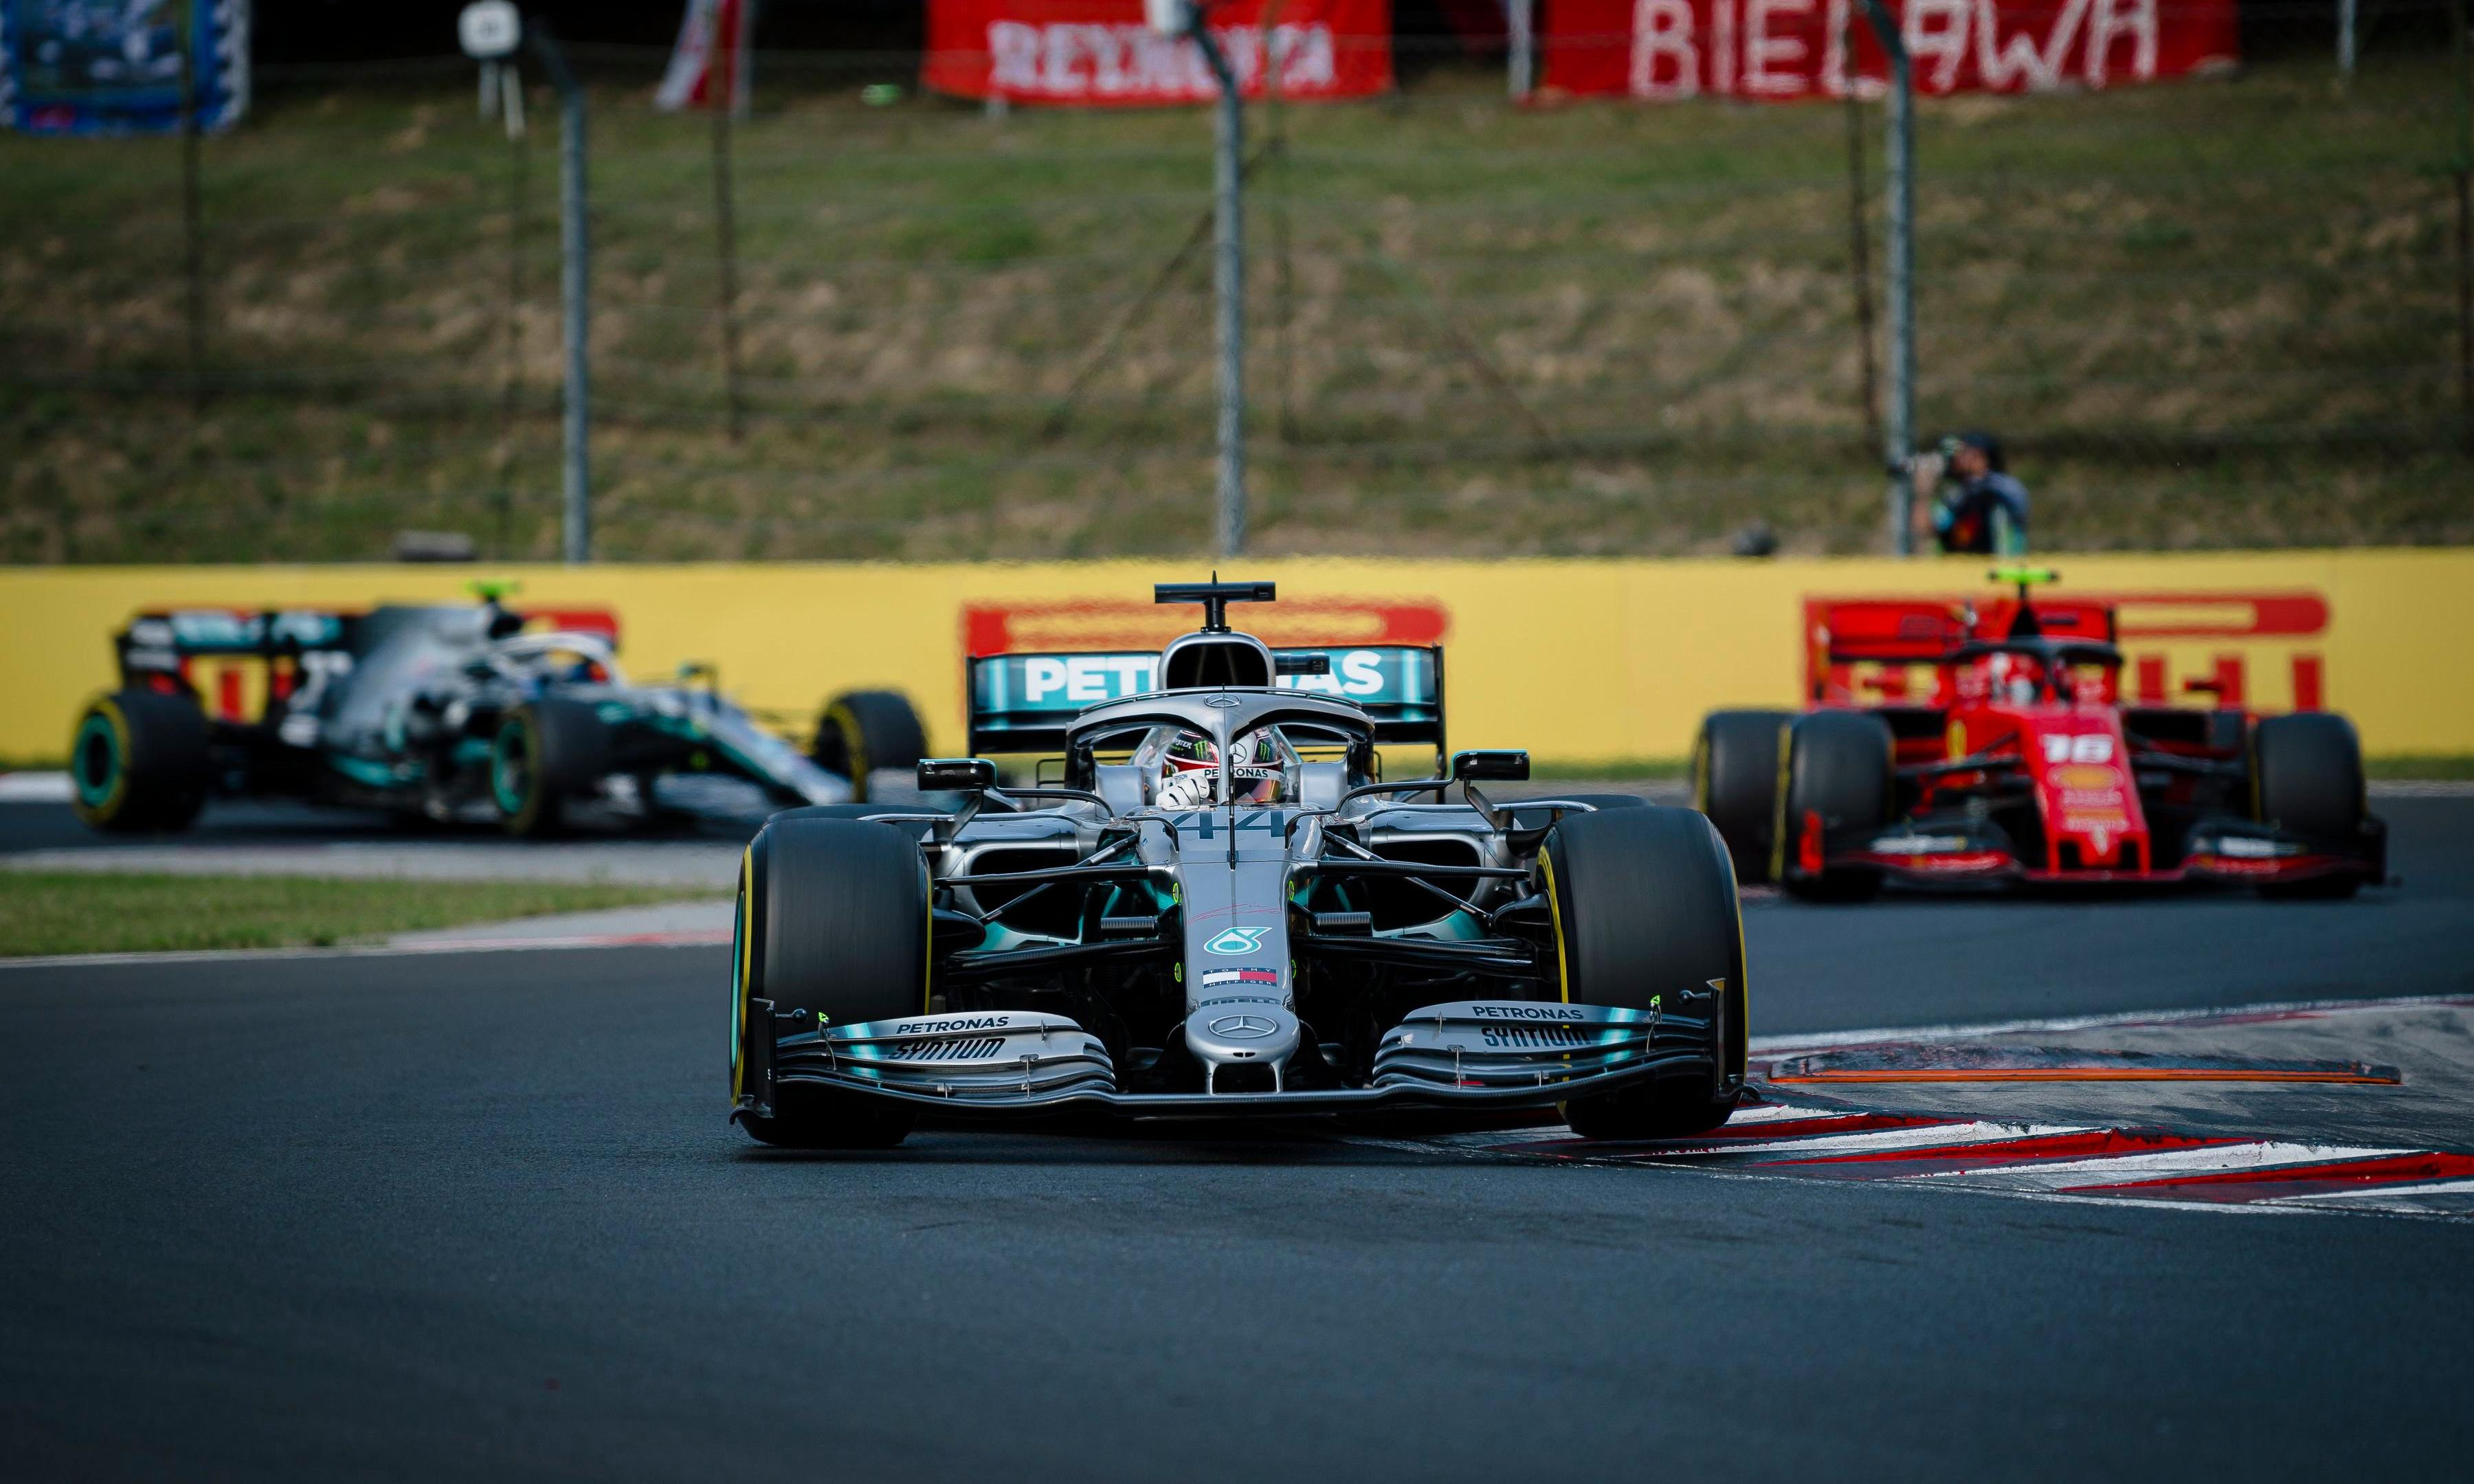 Lewis Hamilton feels at the peak of his powers after stunning Hungary win